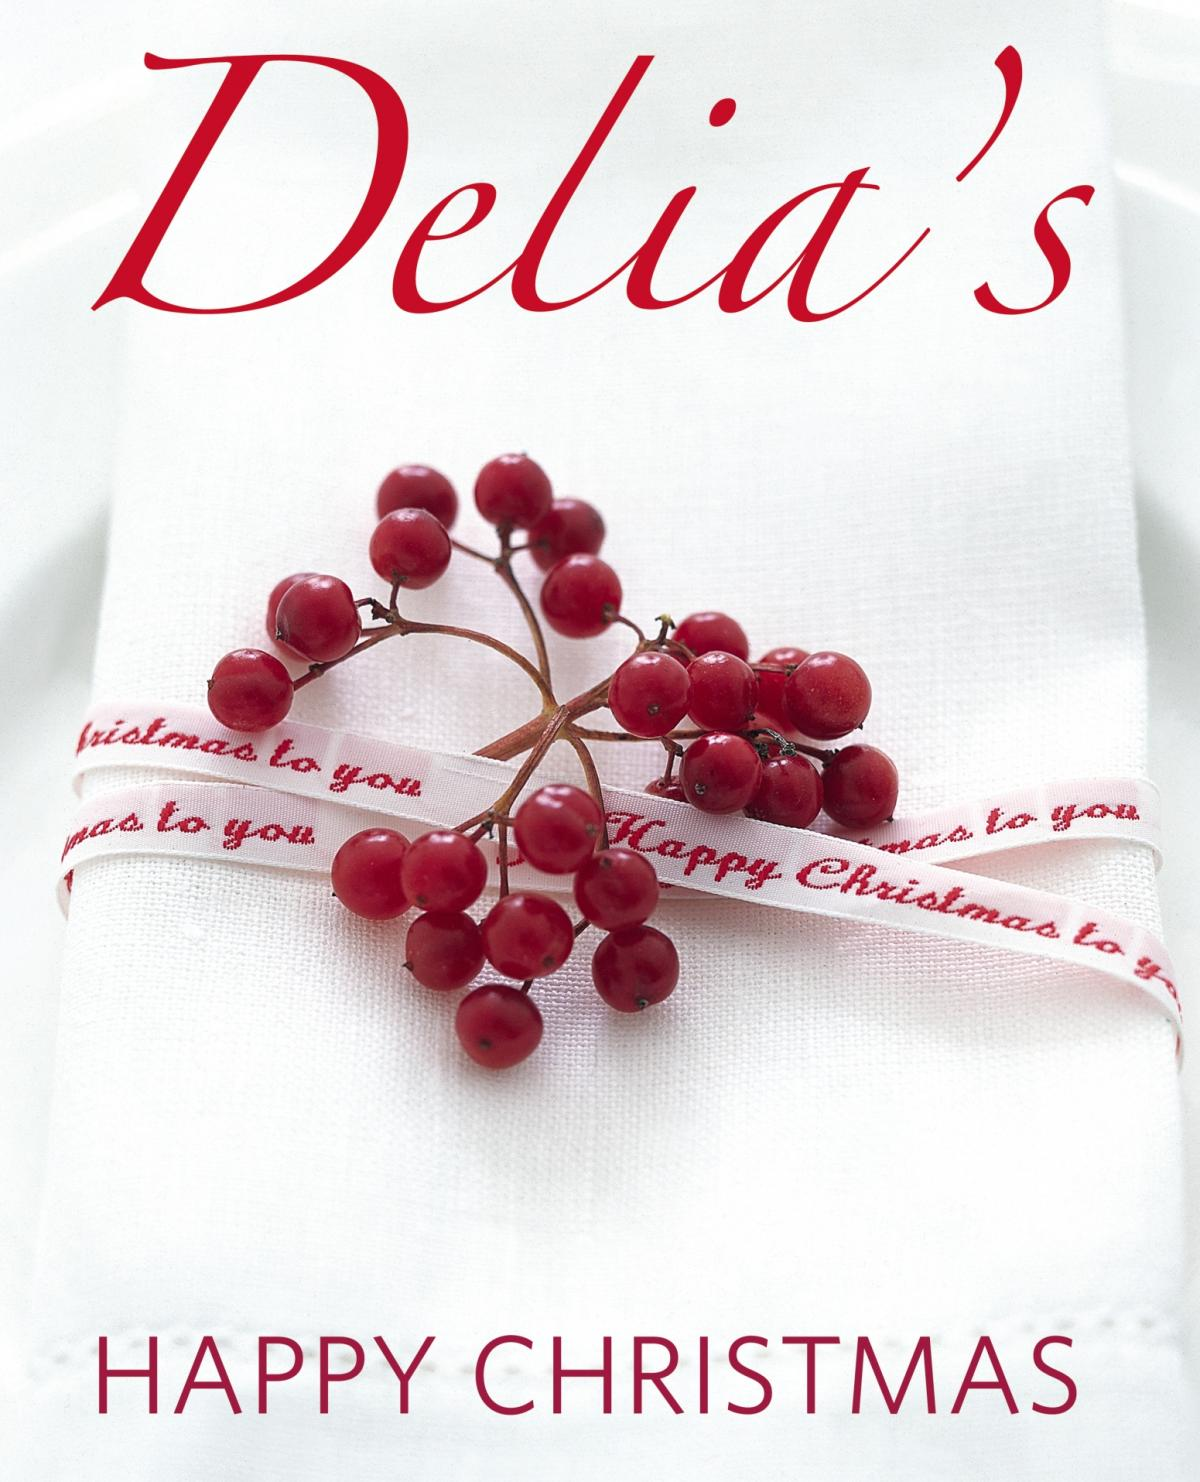 A picture of Delia's Delia's Happy Christmas recipes